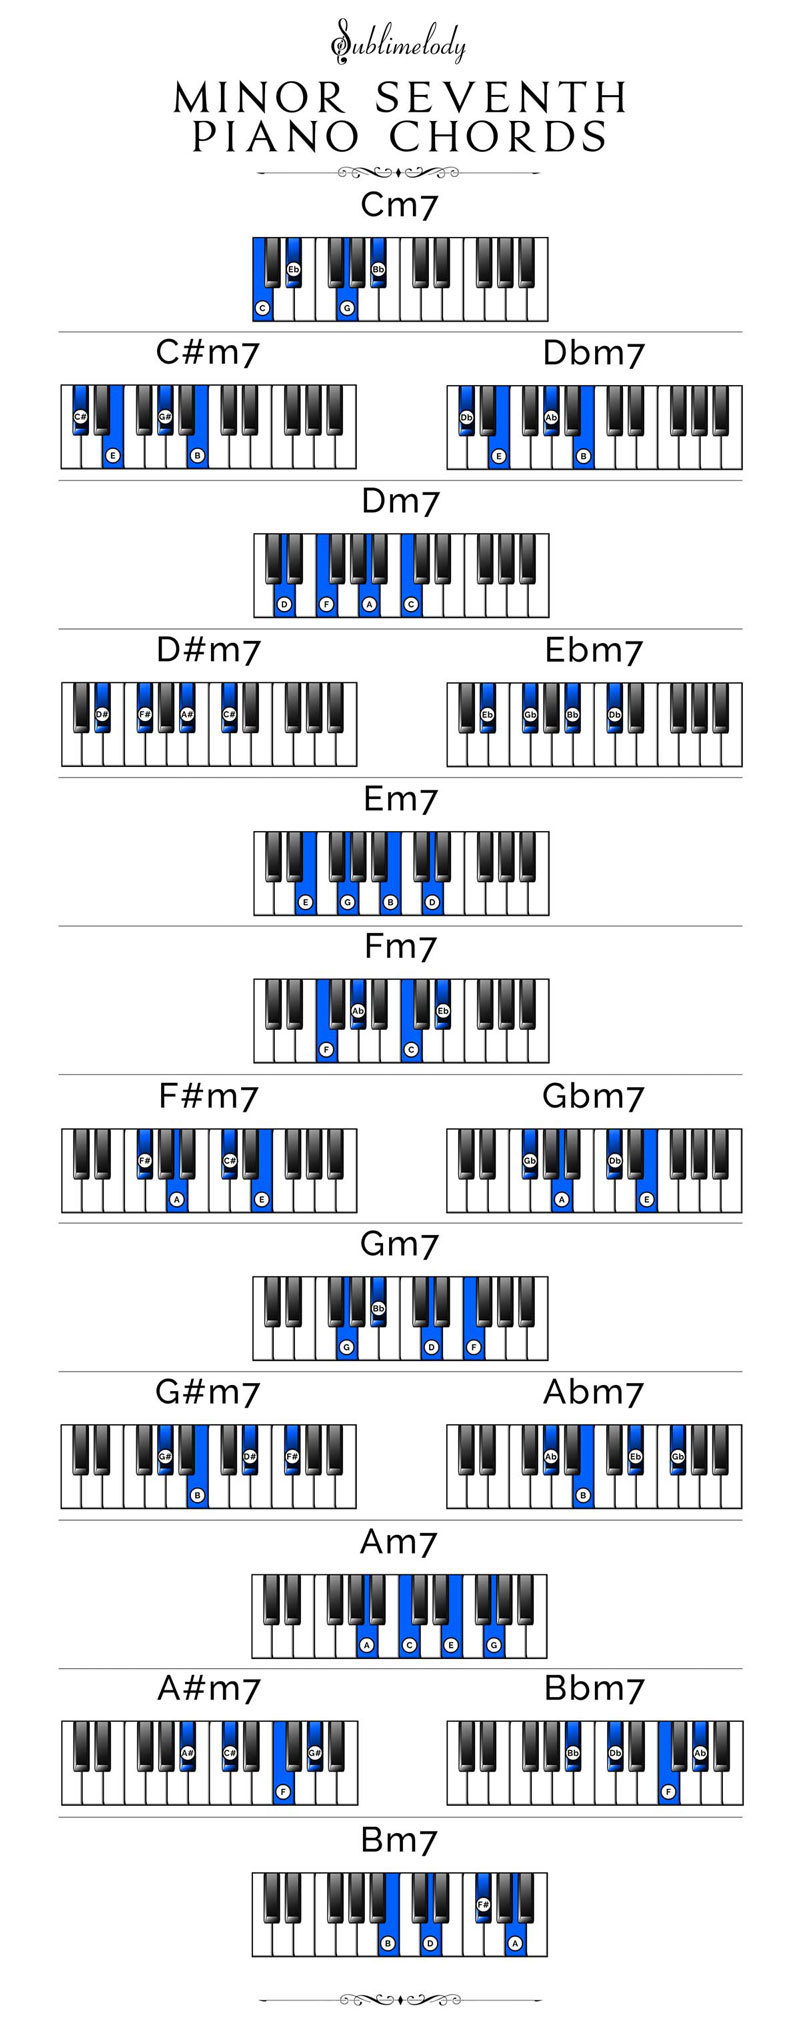 Piano Chord Chart Piano Chords The Definitive Guide 2018 Sublimelody